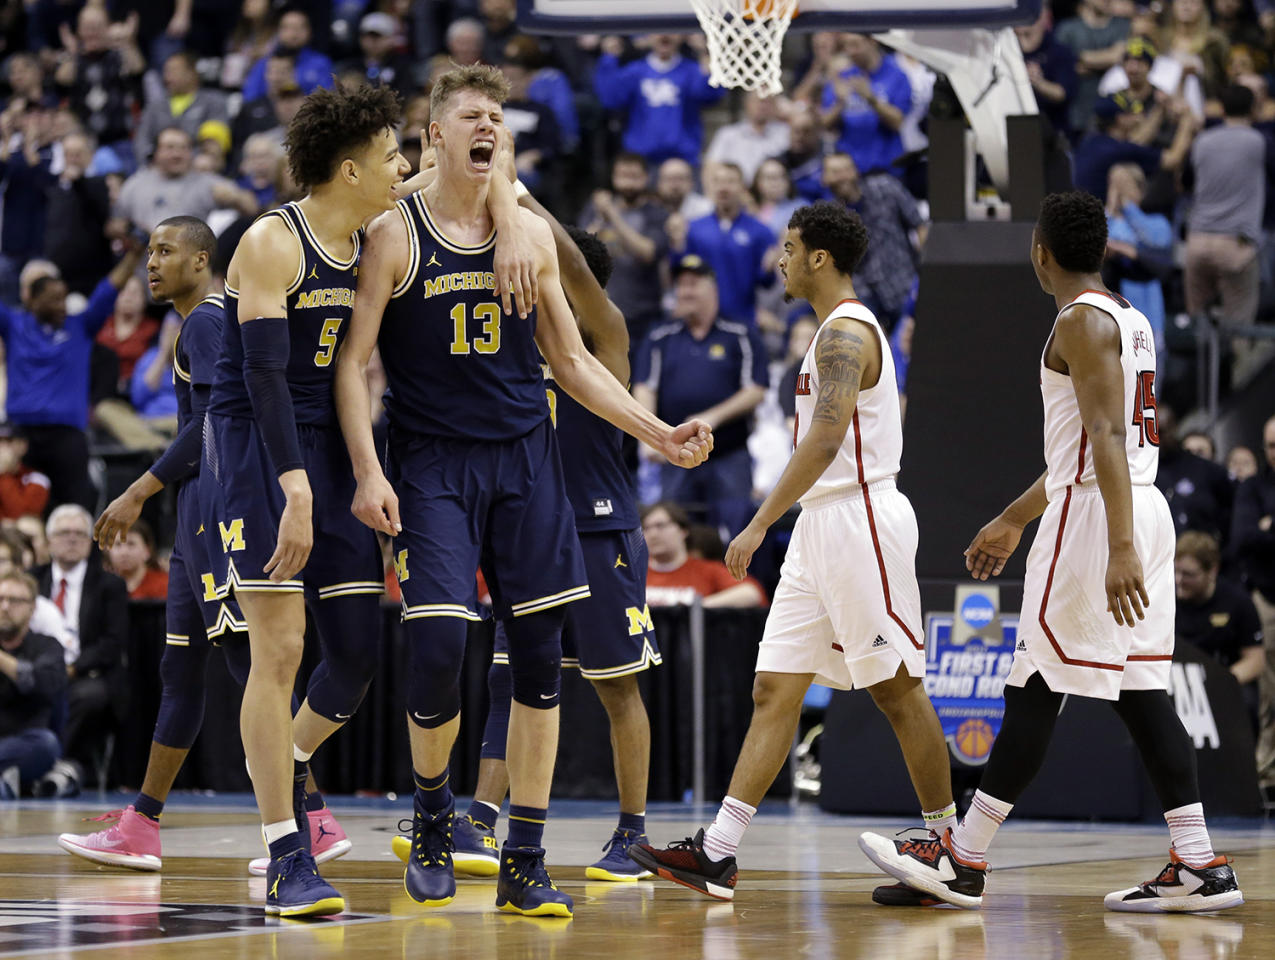 <p>Michigan forwards D.J. Wilson (5) and Moritz Wagner (13) celebrates during the second half of a second-round game against Louisville in the men's NCAA college basketball tournament in Indianapolis, March 19, 2017. Michigan defeated Louisville 73-69. (Photo: Michael Conroy/AP) </p>